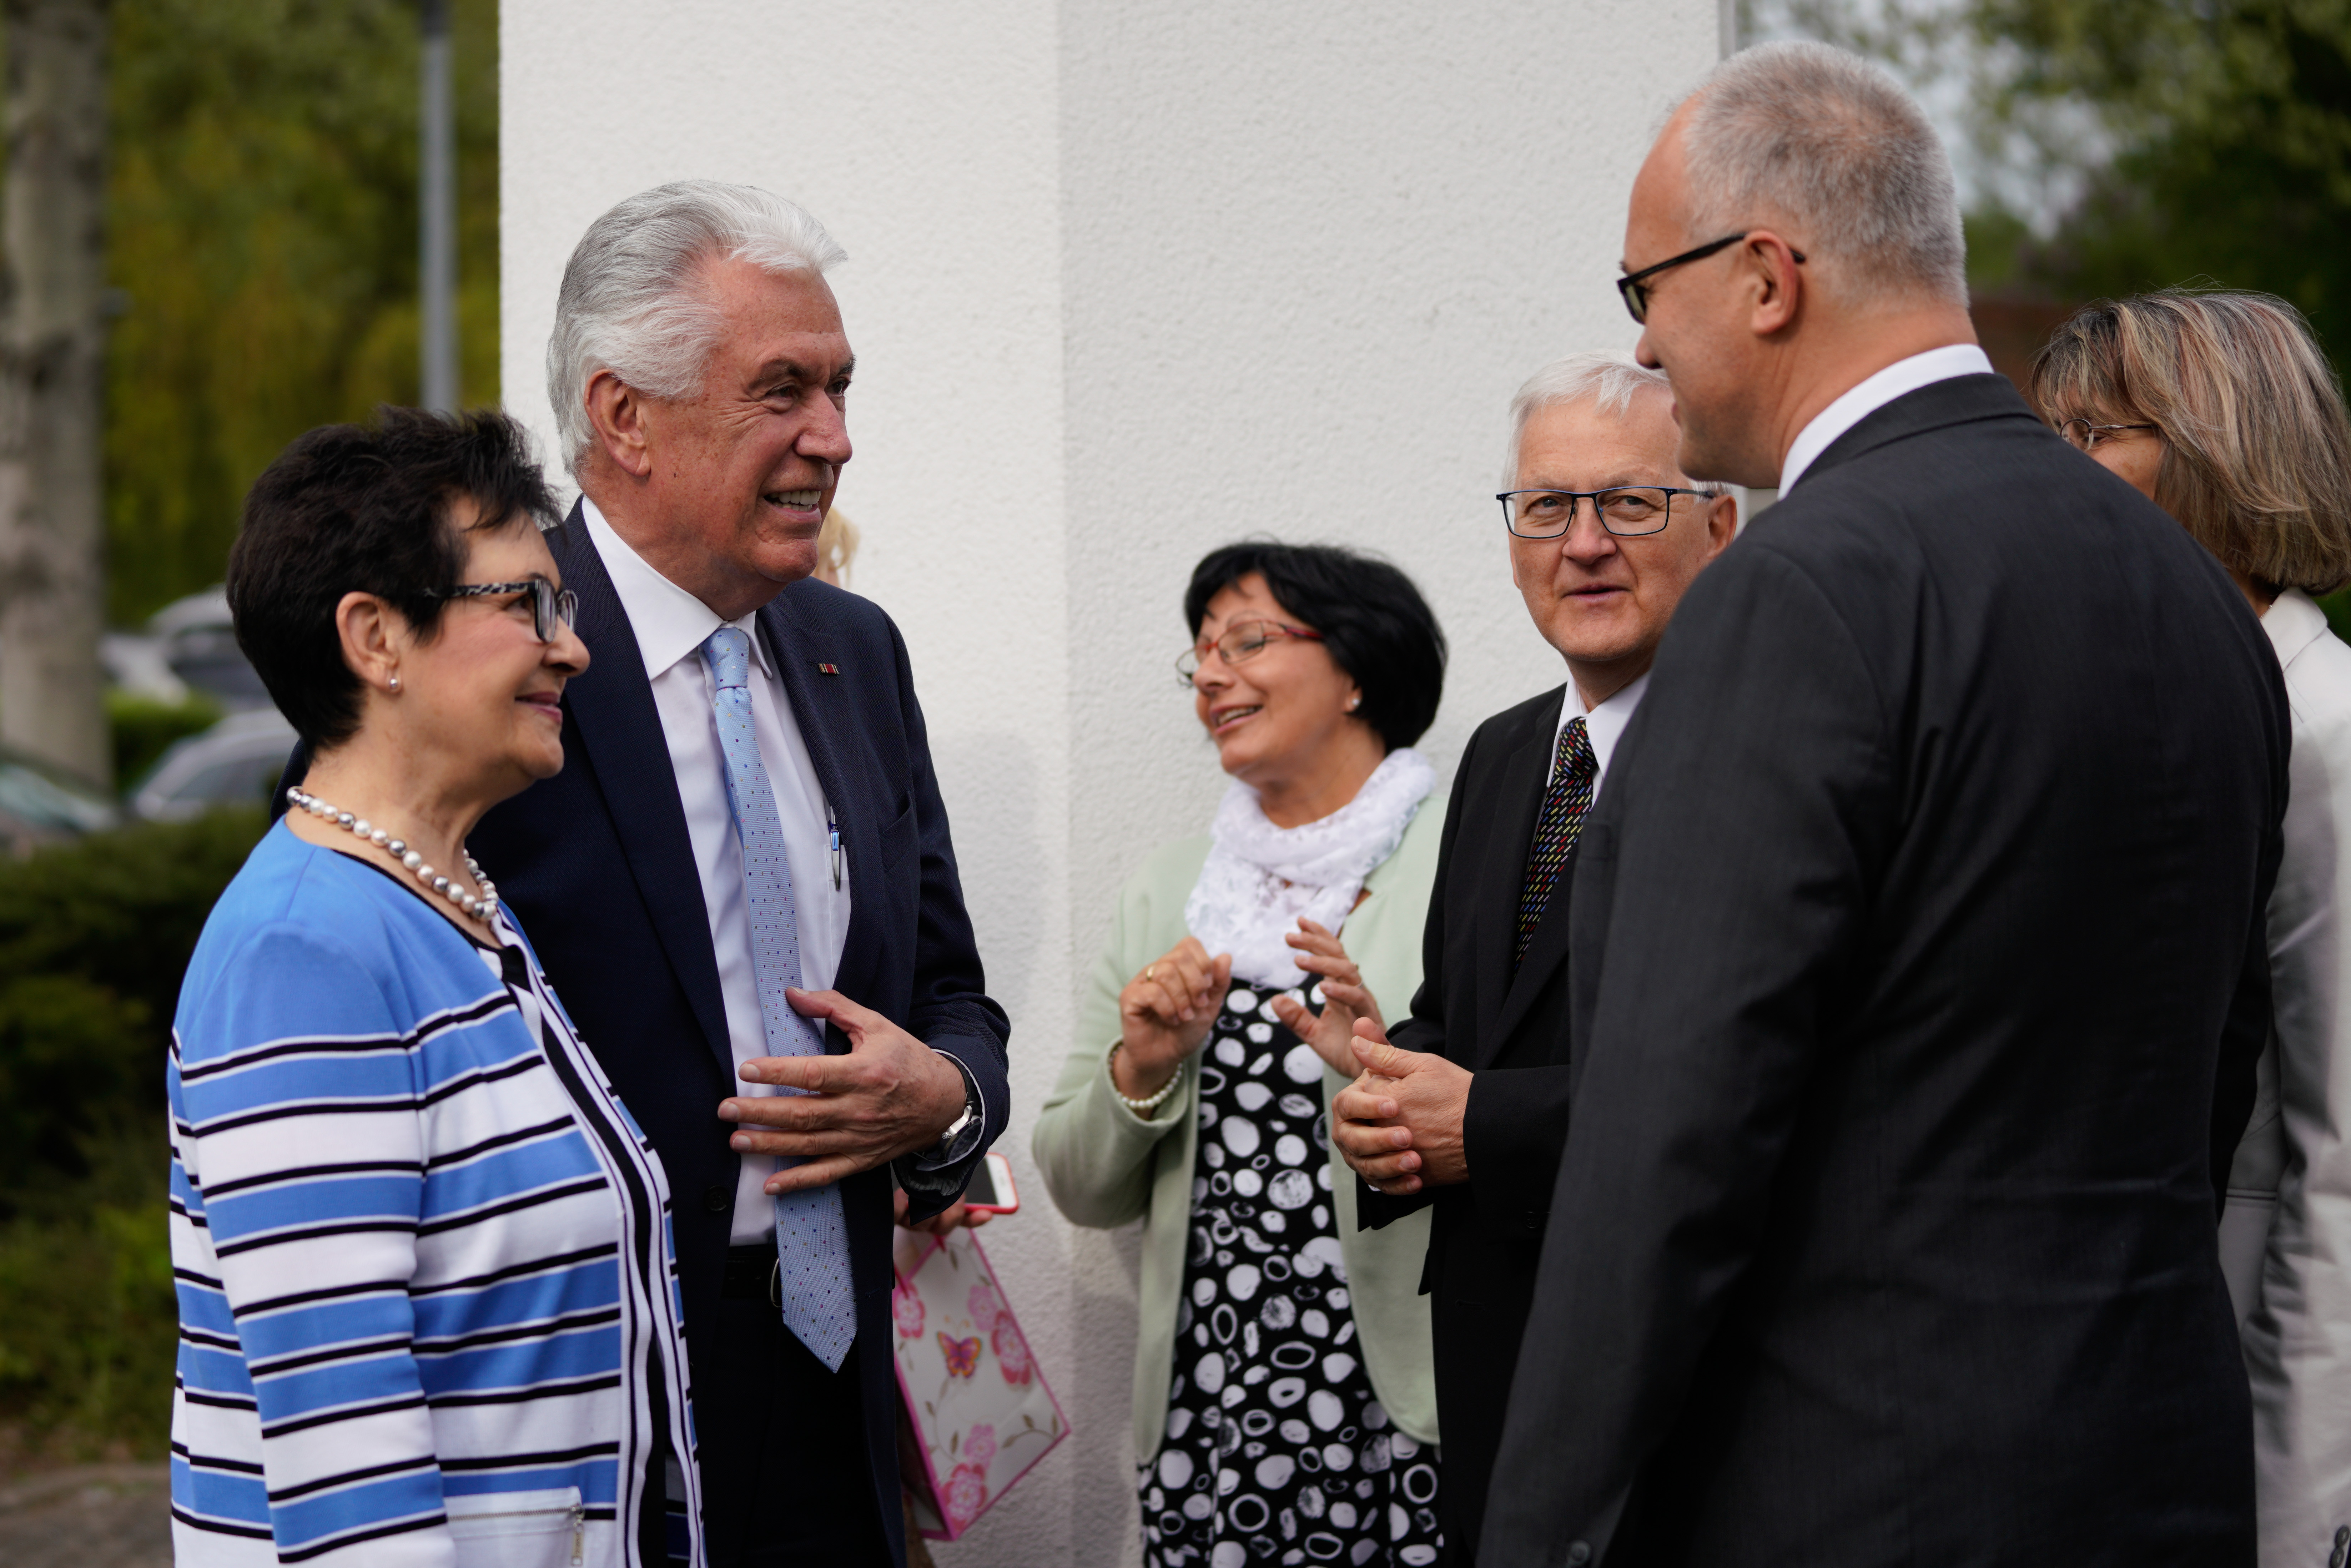 Elder Dieter F. Uchtdorf and Sister Harriet Uchtdorf greet members following a sacrament meeting and branch conference with the Görlitz Branch on April 28, 2019, in Görlitz, Germany.